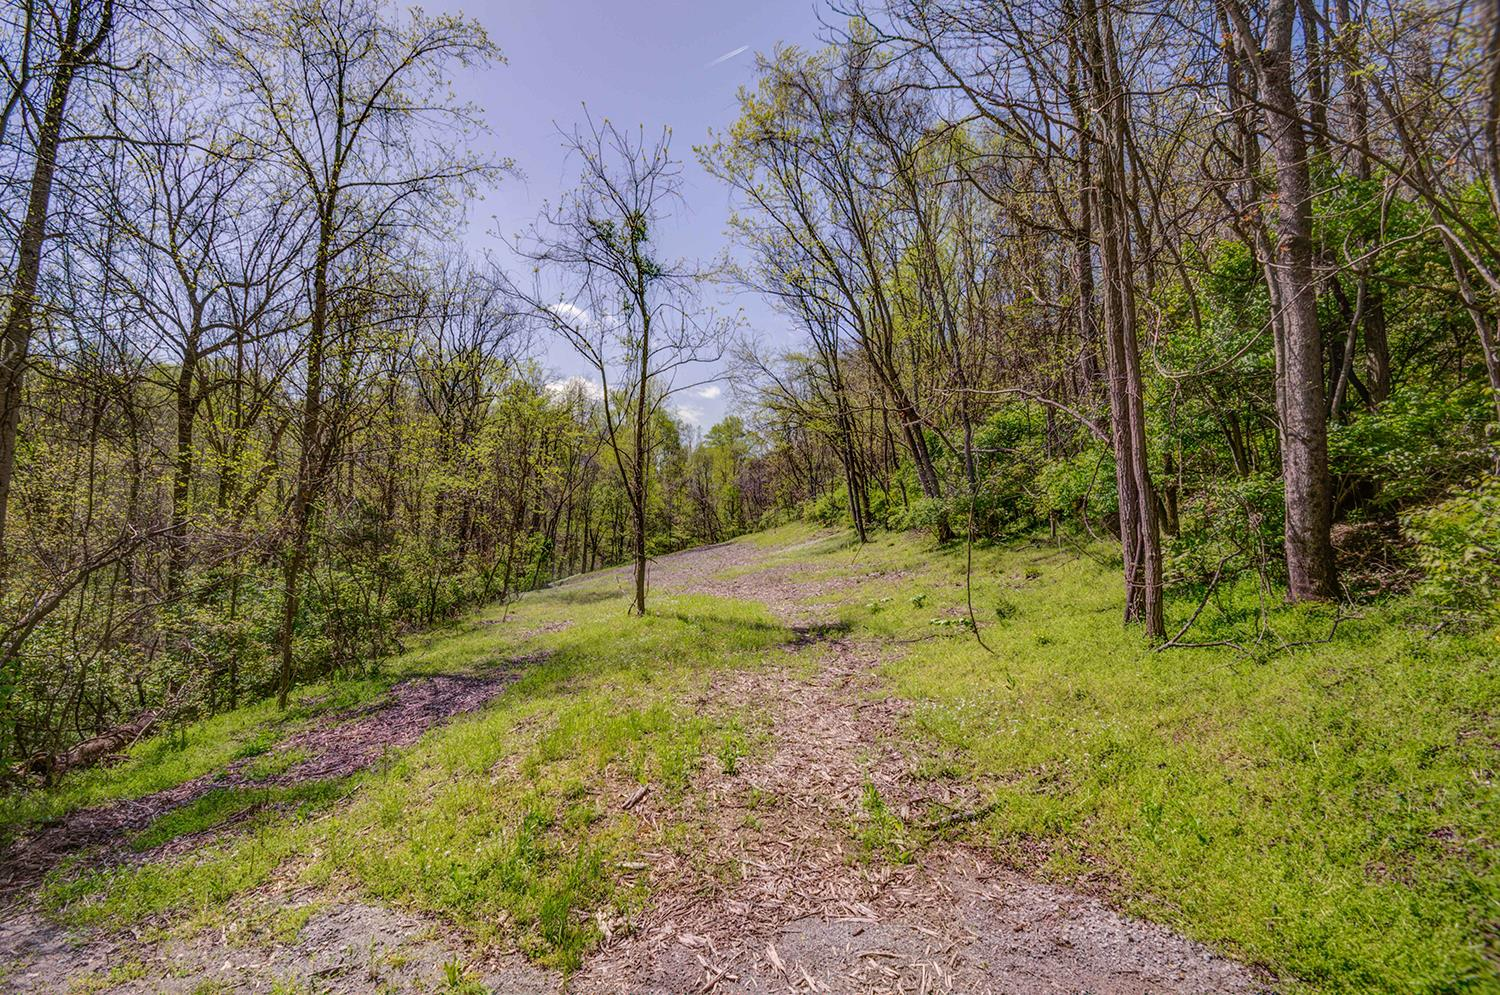 751 Dry Creek Rd, Goodlettsville, Tennessee